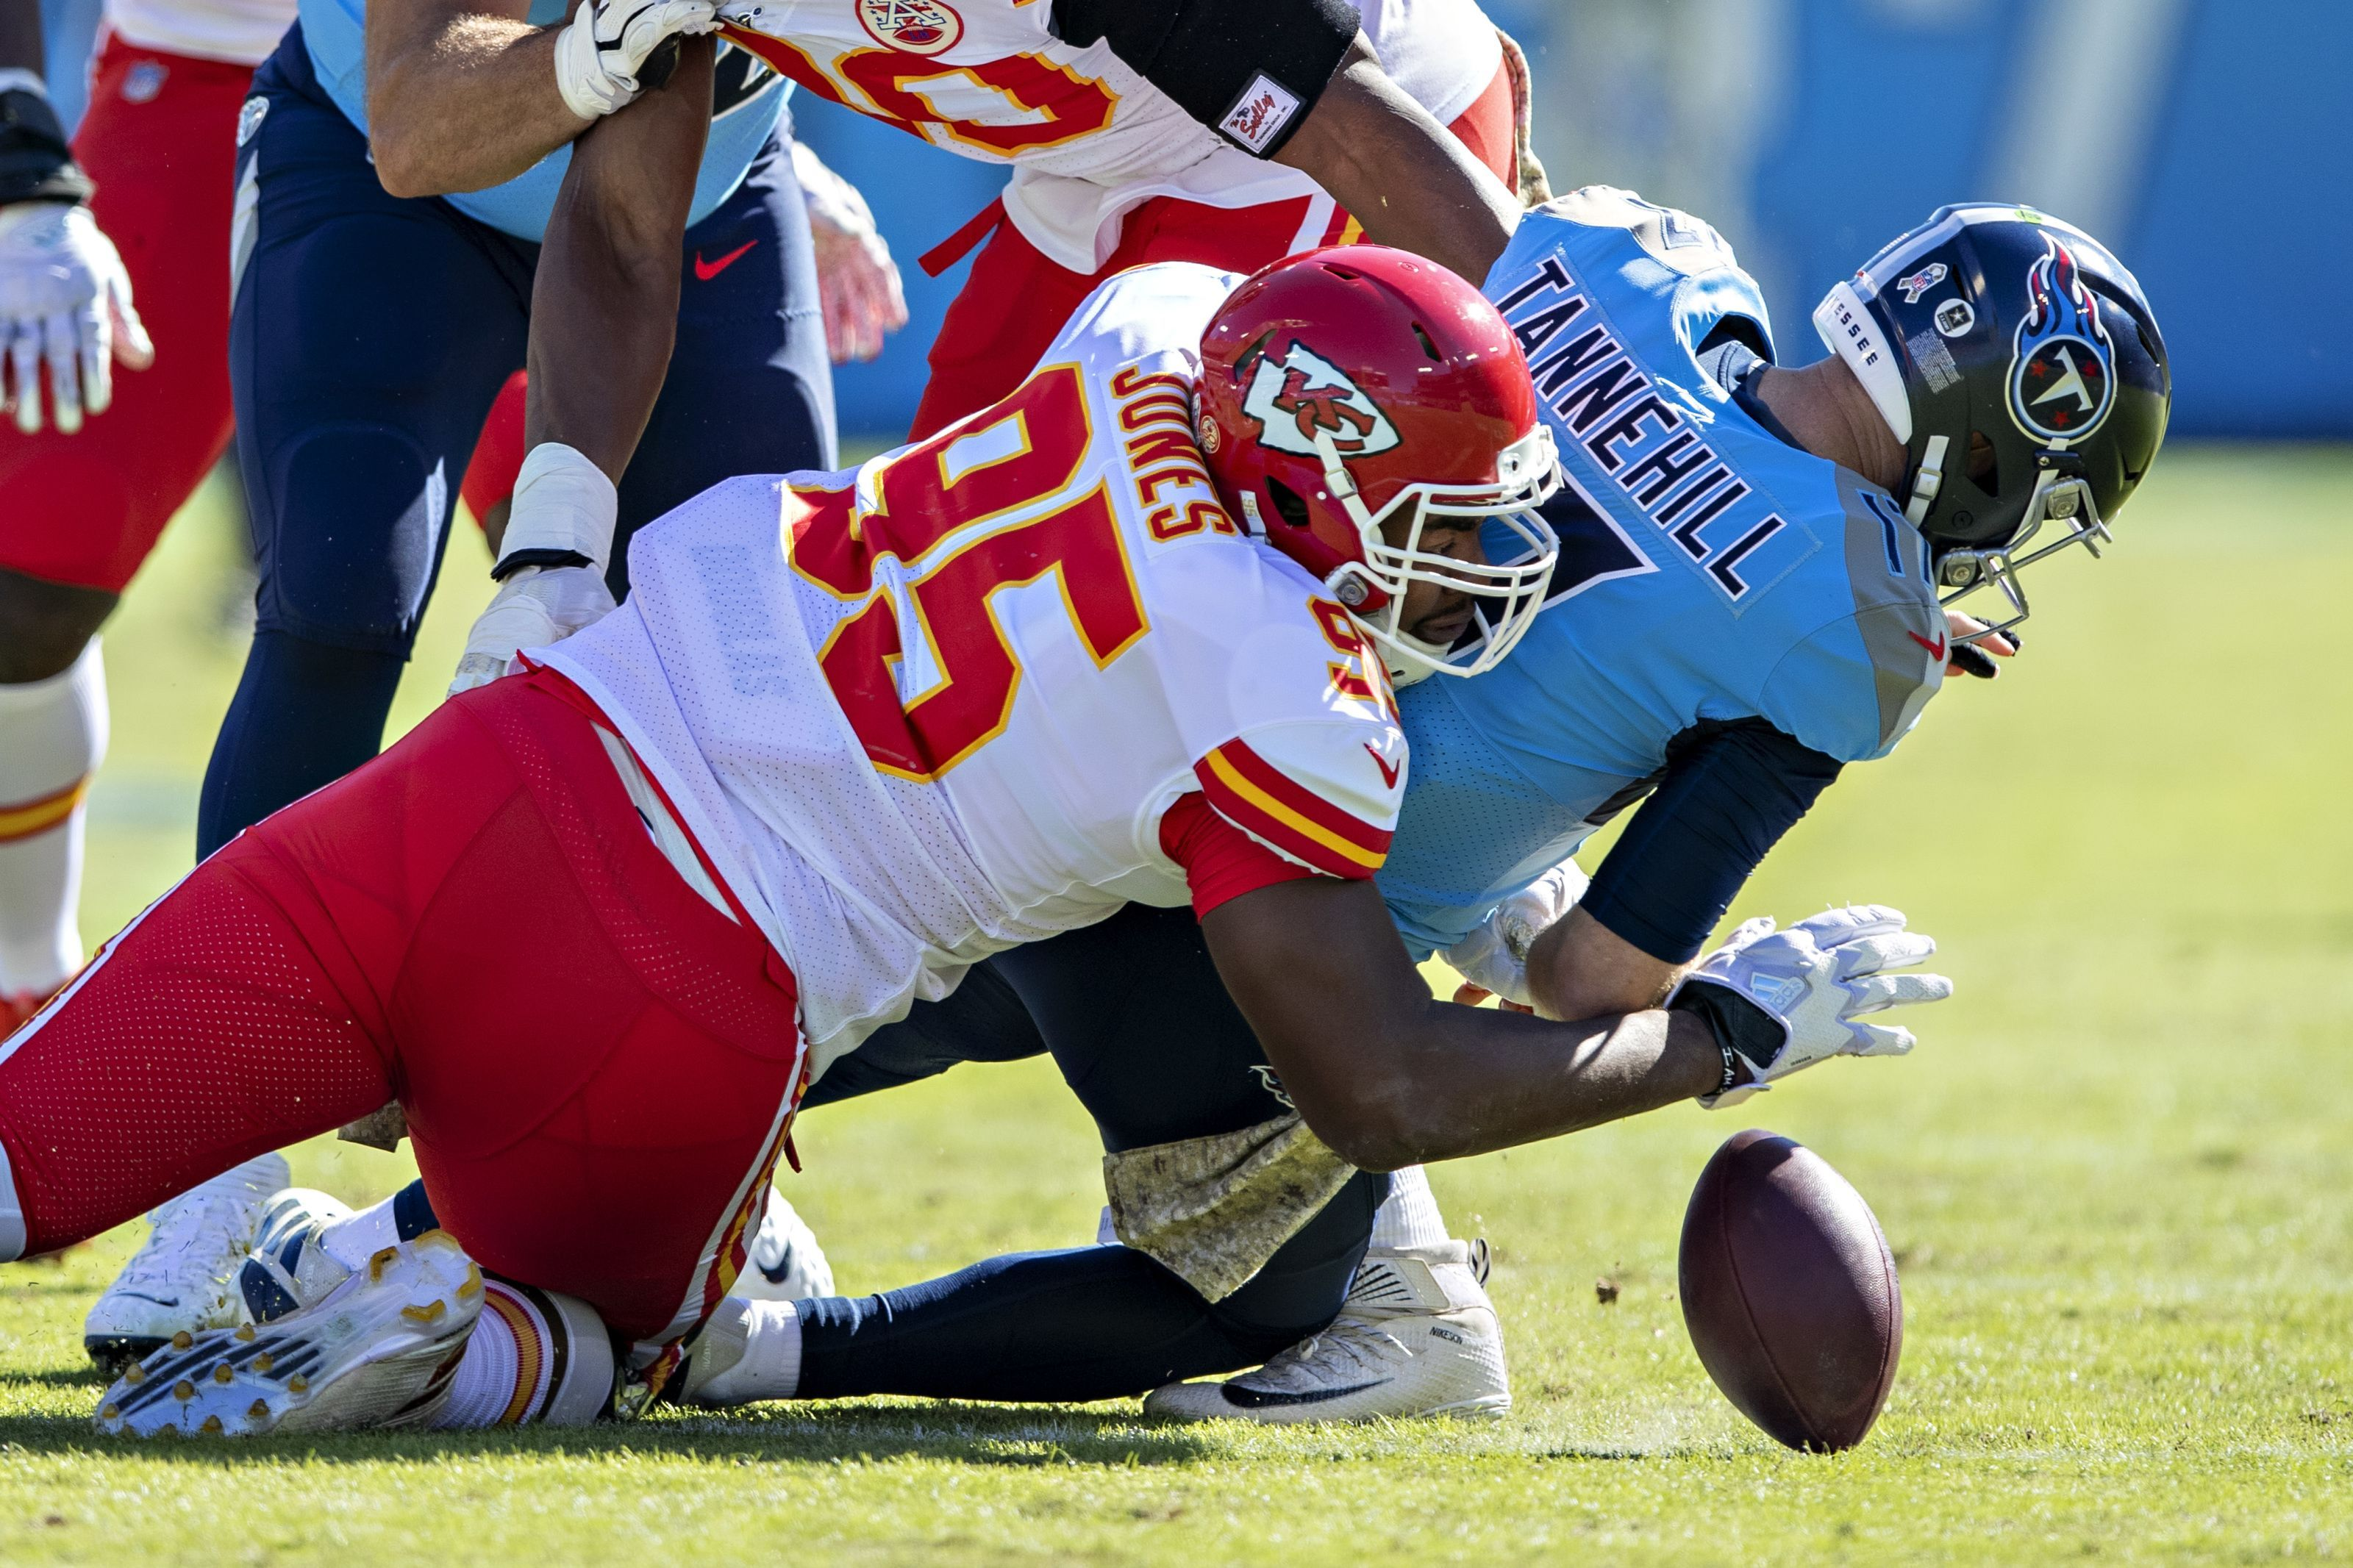 Chris Jones Injury Update Chiefs Lineman Is Day To Day Per Andy Reid National Football League News In 2020 Nfl News National Football League National Football